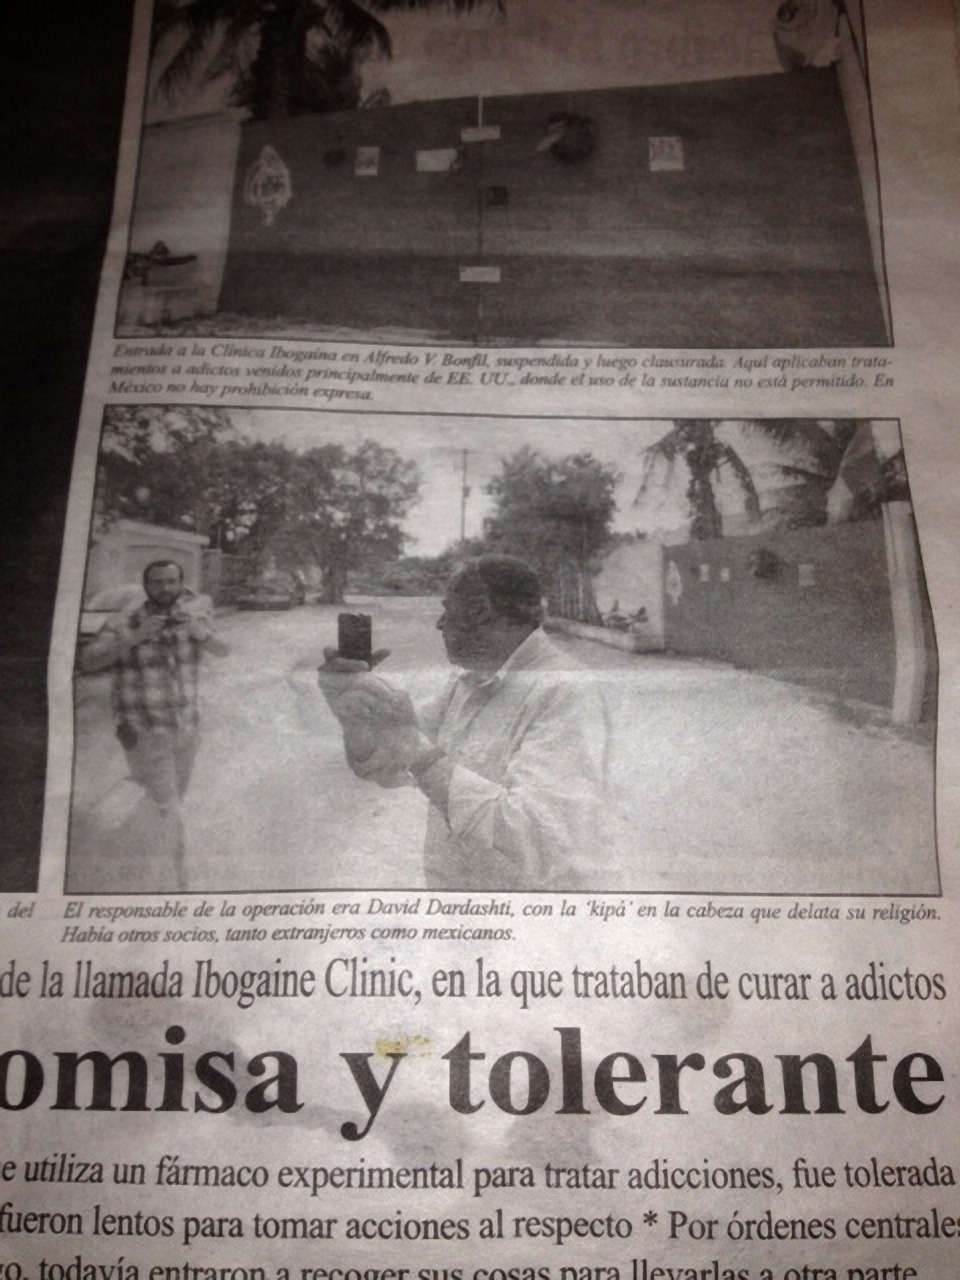 Front page of newspaper in Cancun featuring Health Department and Police signs over the boarded up front gate of one of the houses Dardashti has rented to dose people with ibogaine, with David Dardashti being arrested again in the foreground.